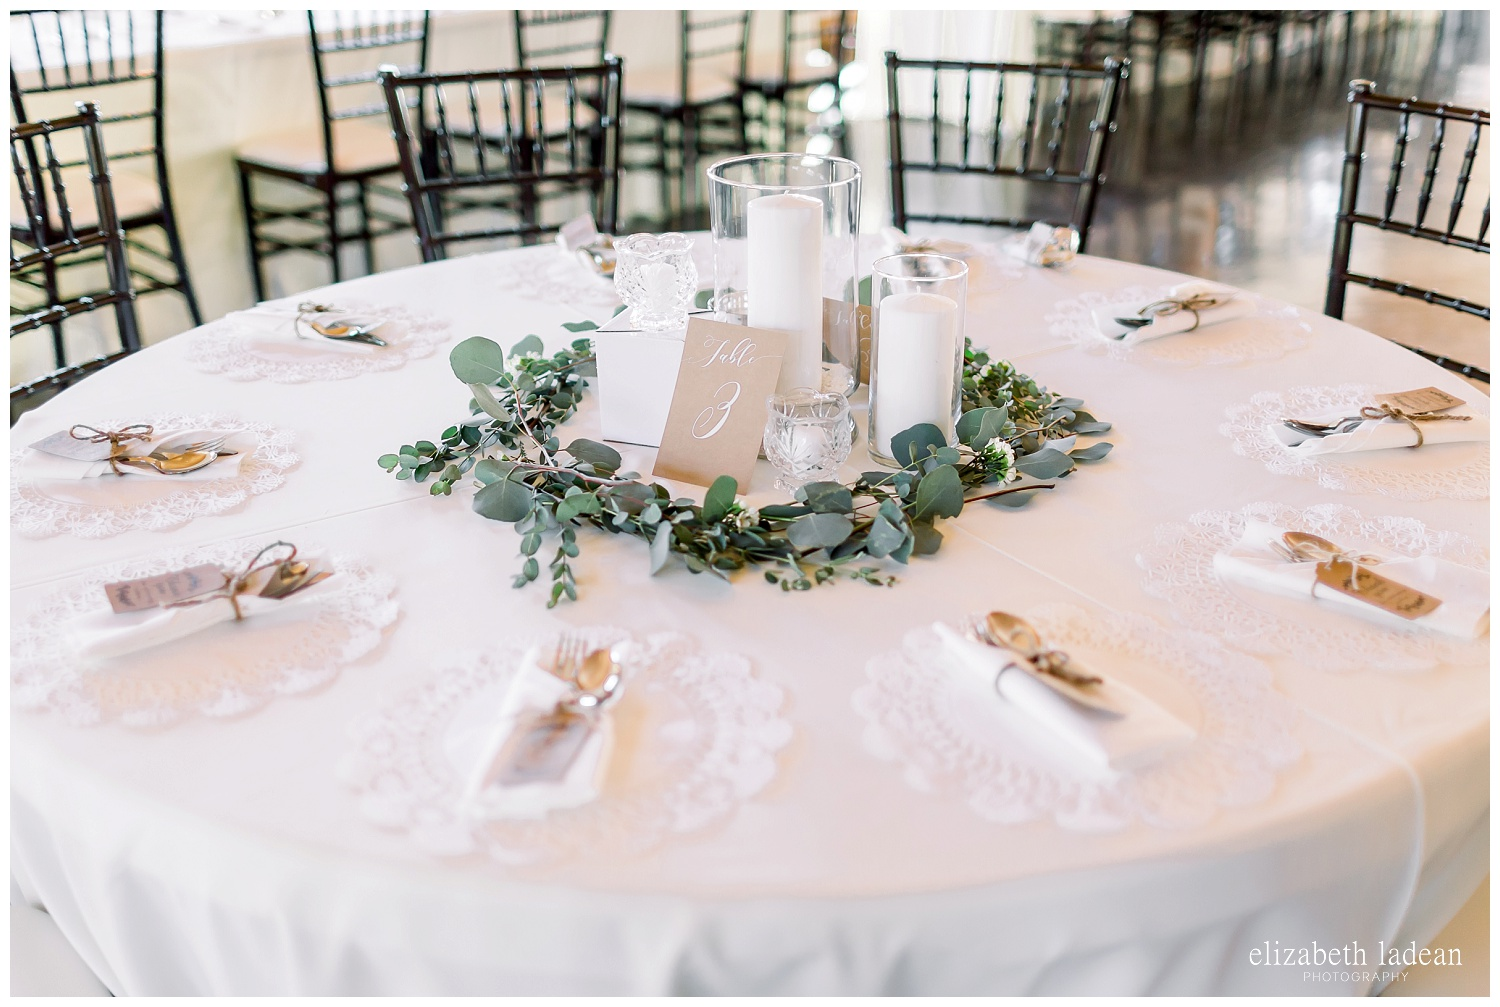 Willow-Creek-Blush-and-Blues-Outdoor-Wedding-Photography-S+Z2018-elizabeth-ladean-photography-photo_0591.jpg